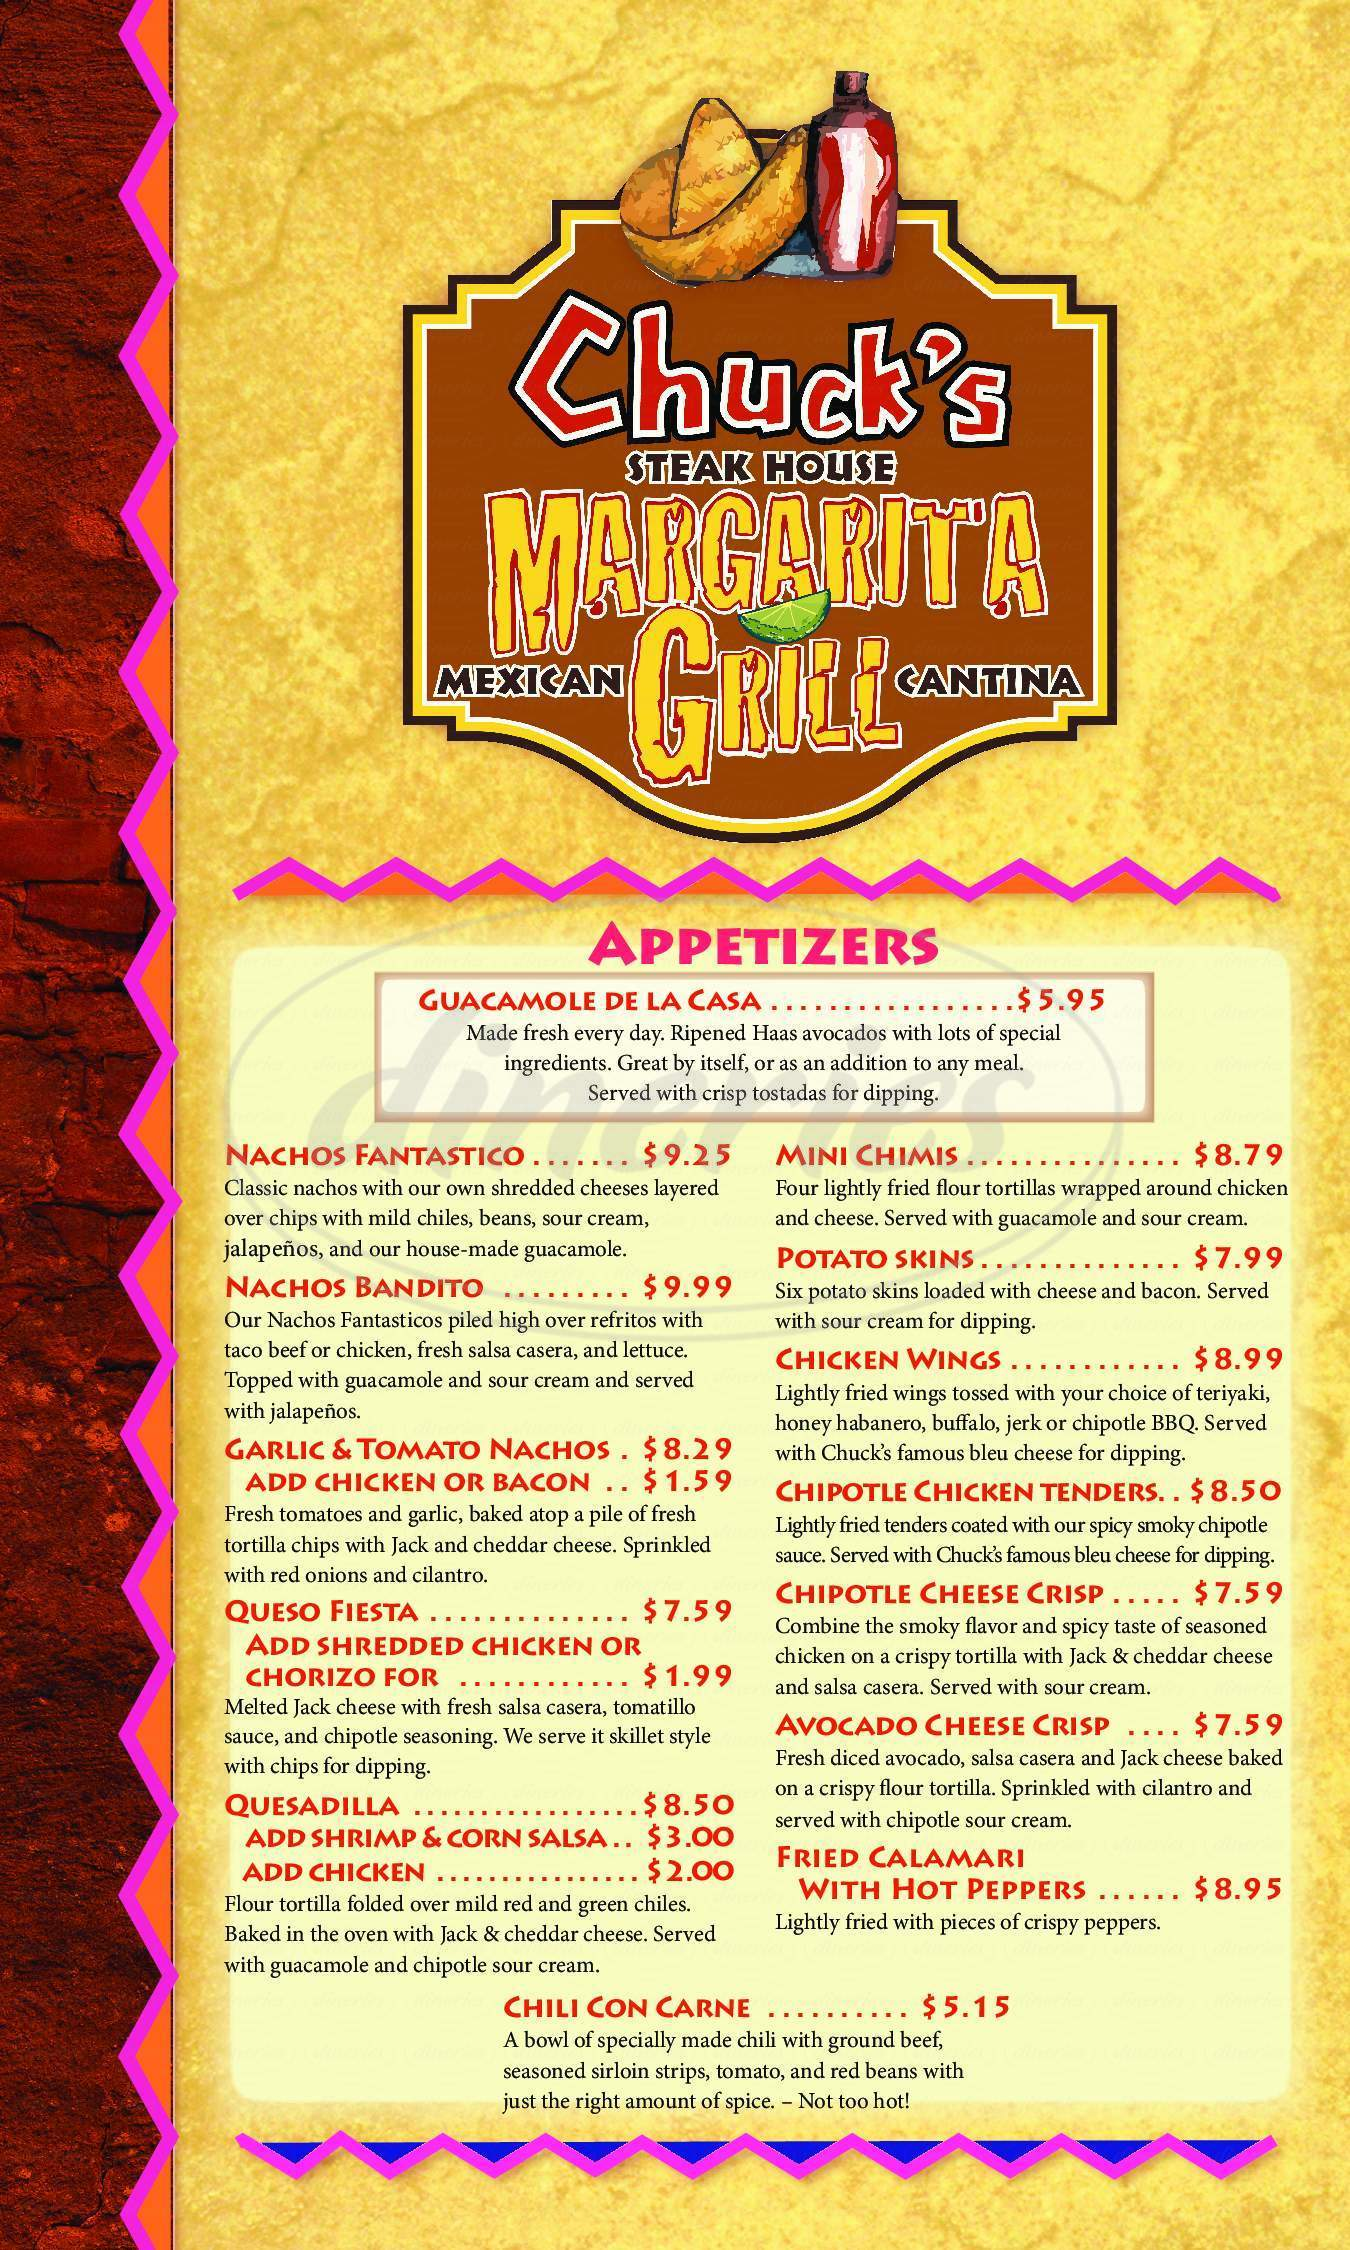 menu for Chuck's Margarita Grill